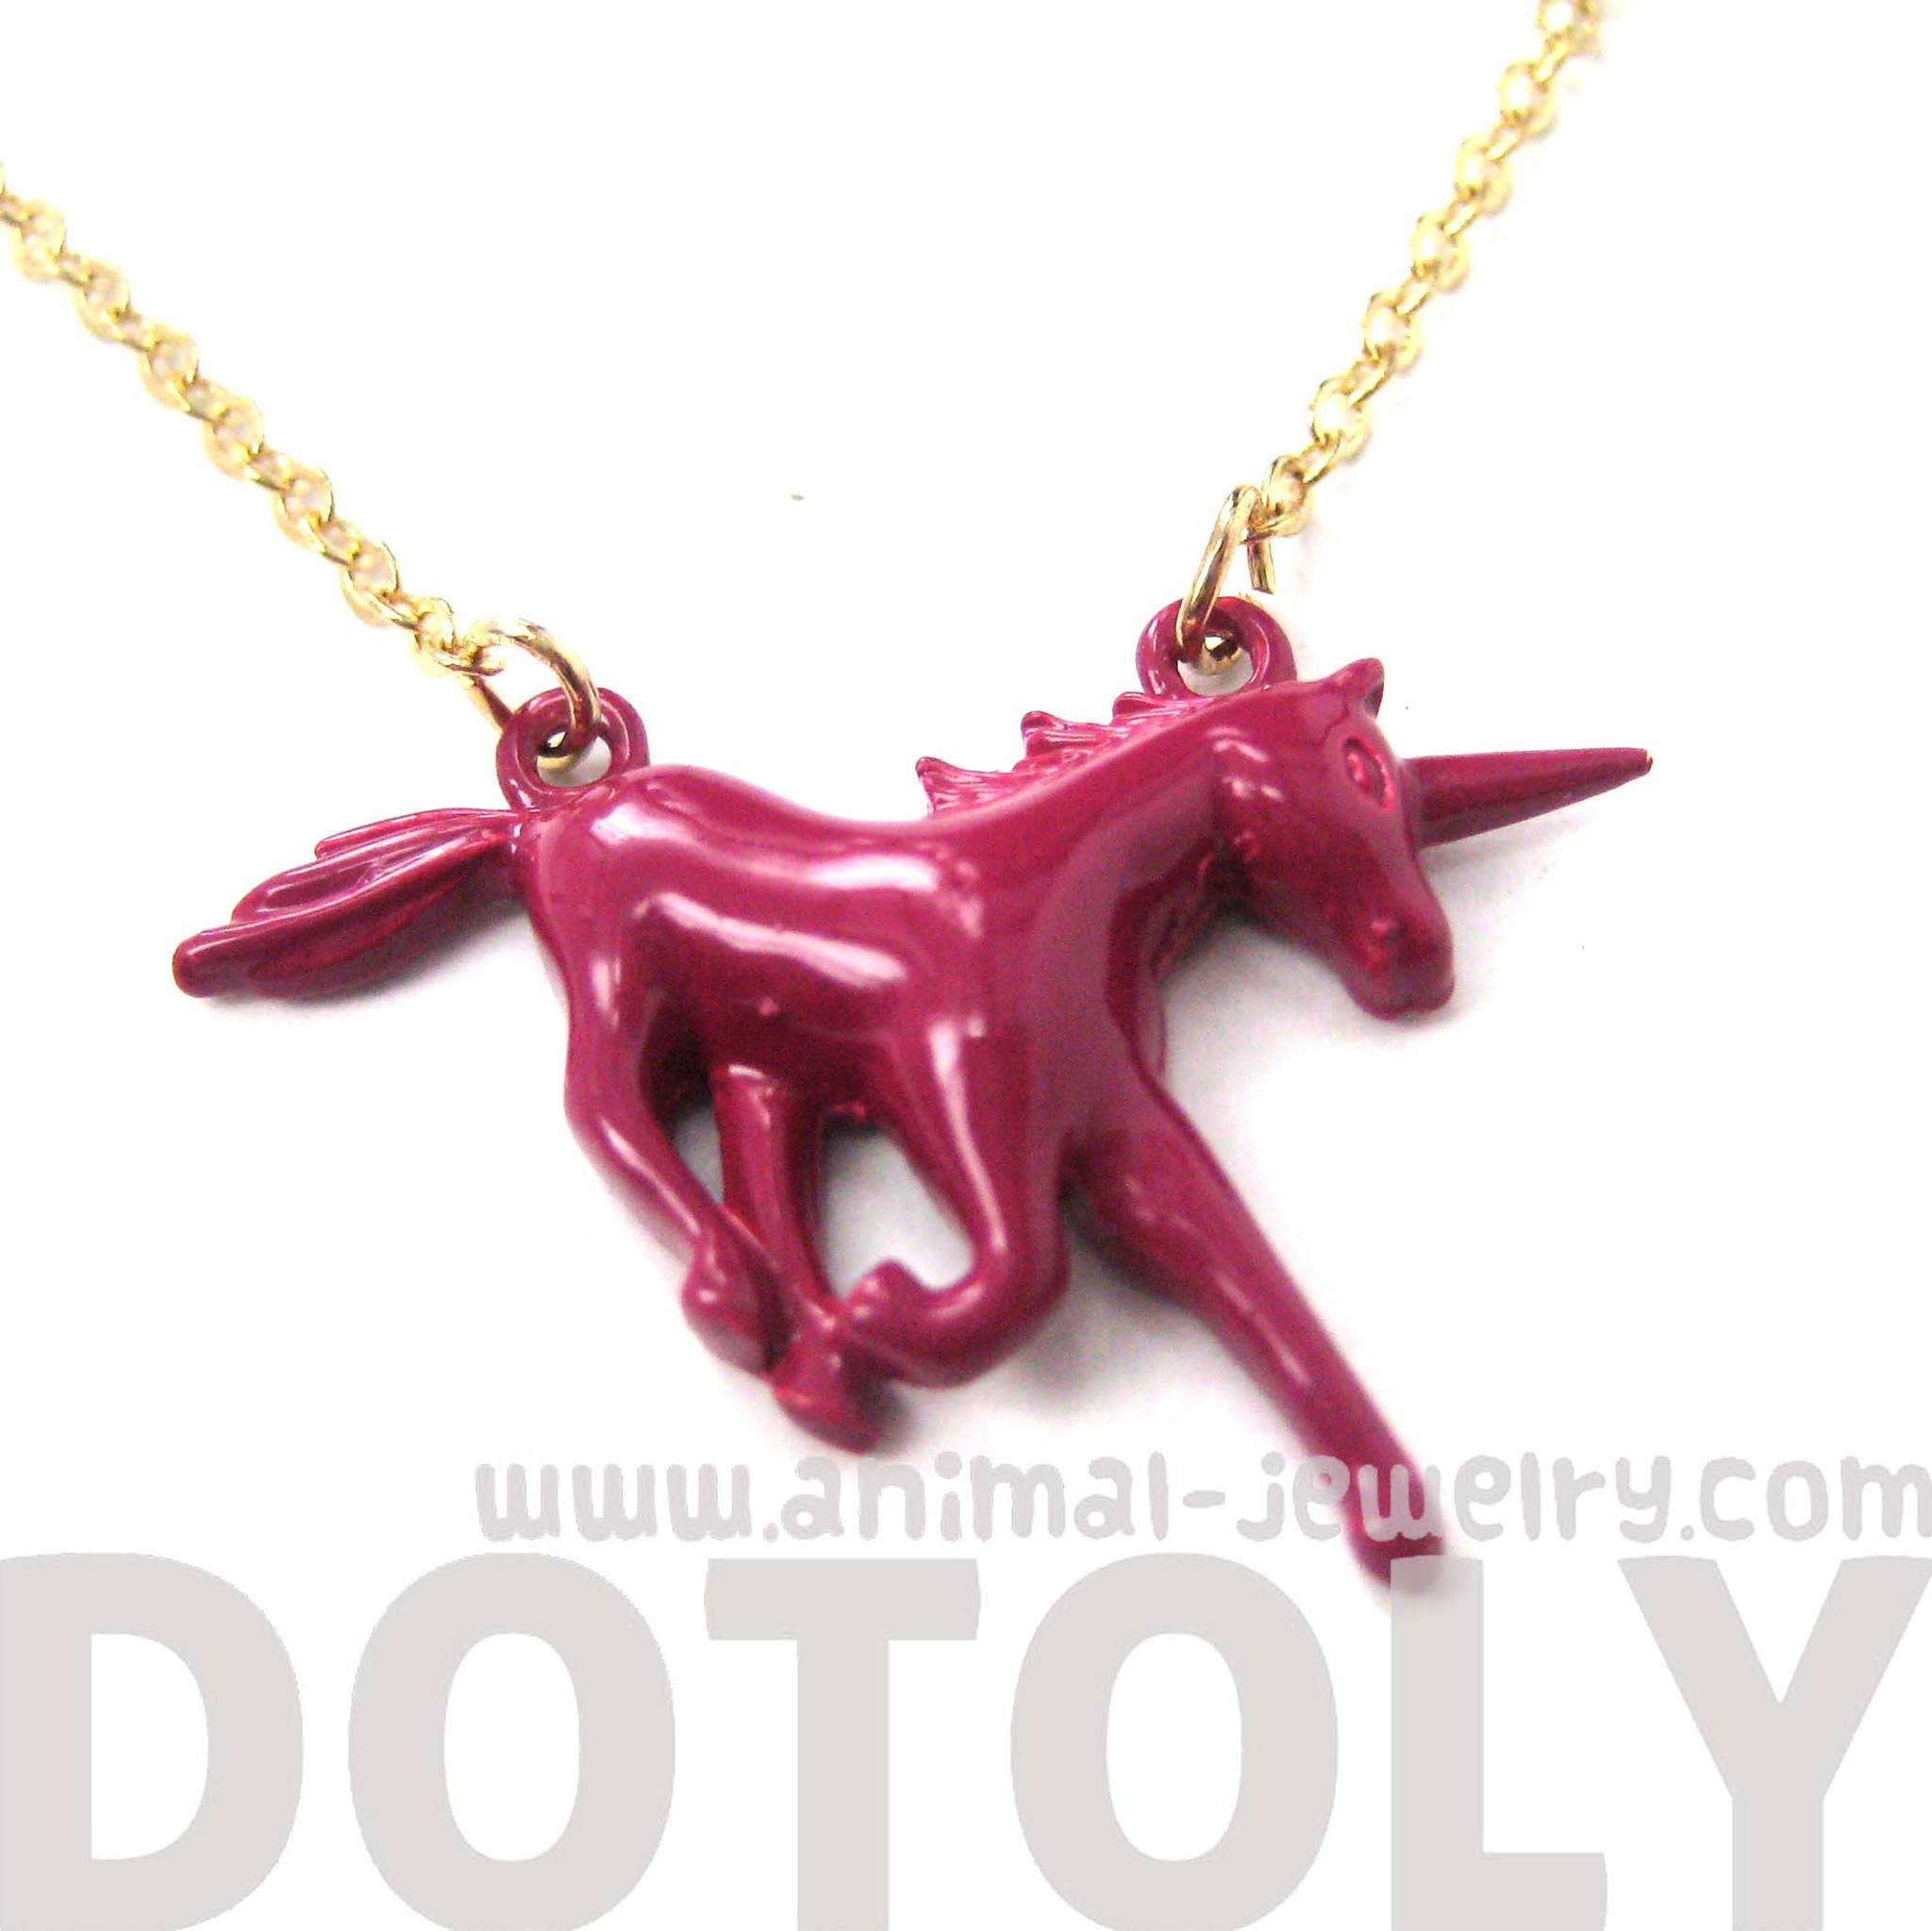 unicorn-horse-animal-pendant-necklace-in-maroon-red-animal-jewelry